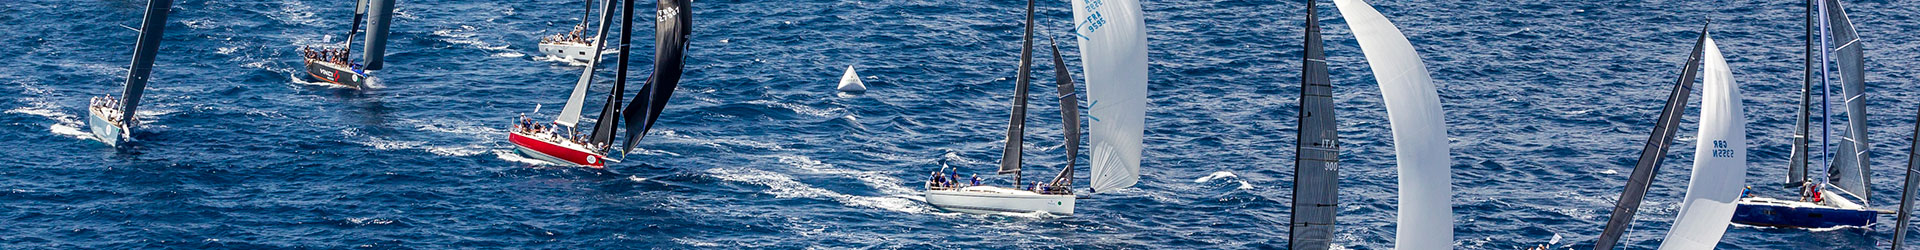 regatta official website | Giraglia Rolex Cup 2017 results | Rolex Giraglia 2017 dates